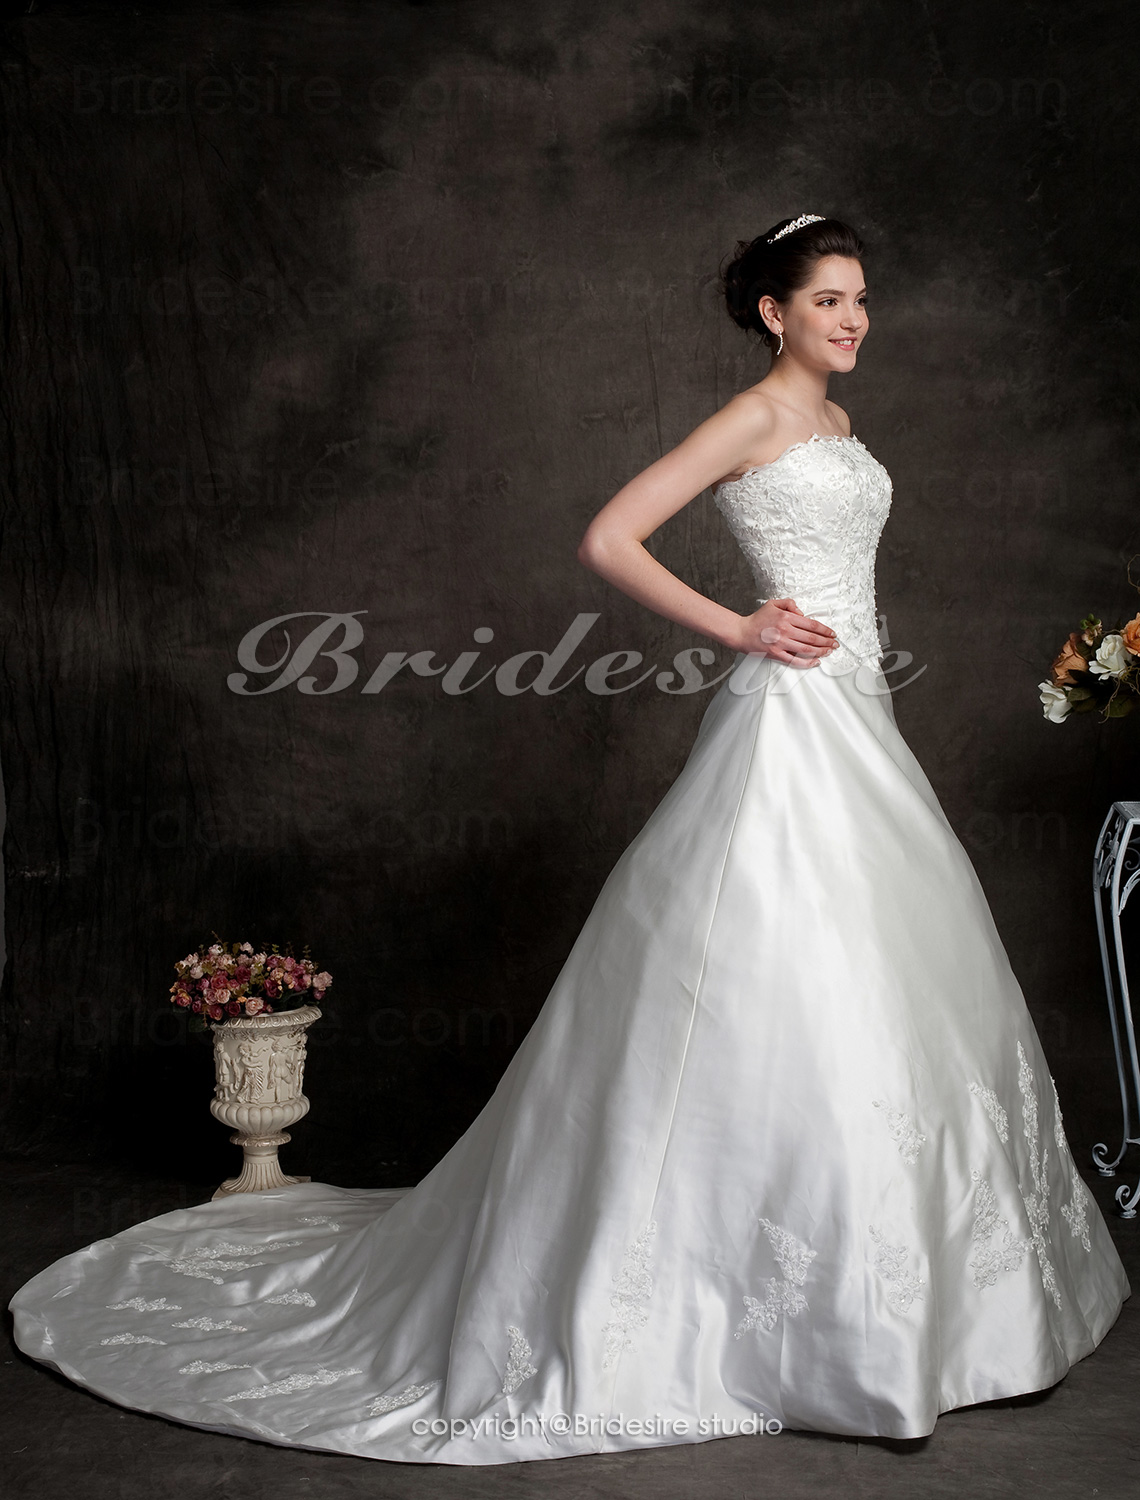 A-line Court Train Satin Scalloped-Edge Neckline Wedding Dress With A Wrap